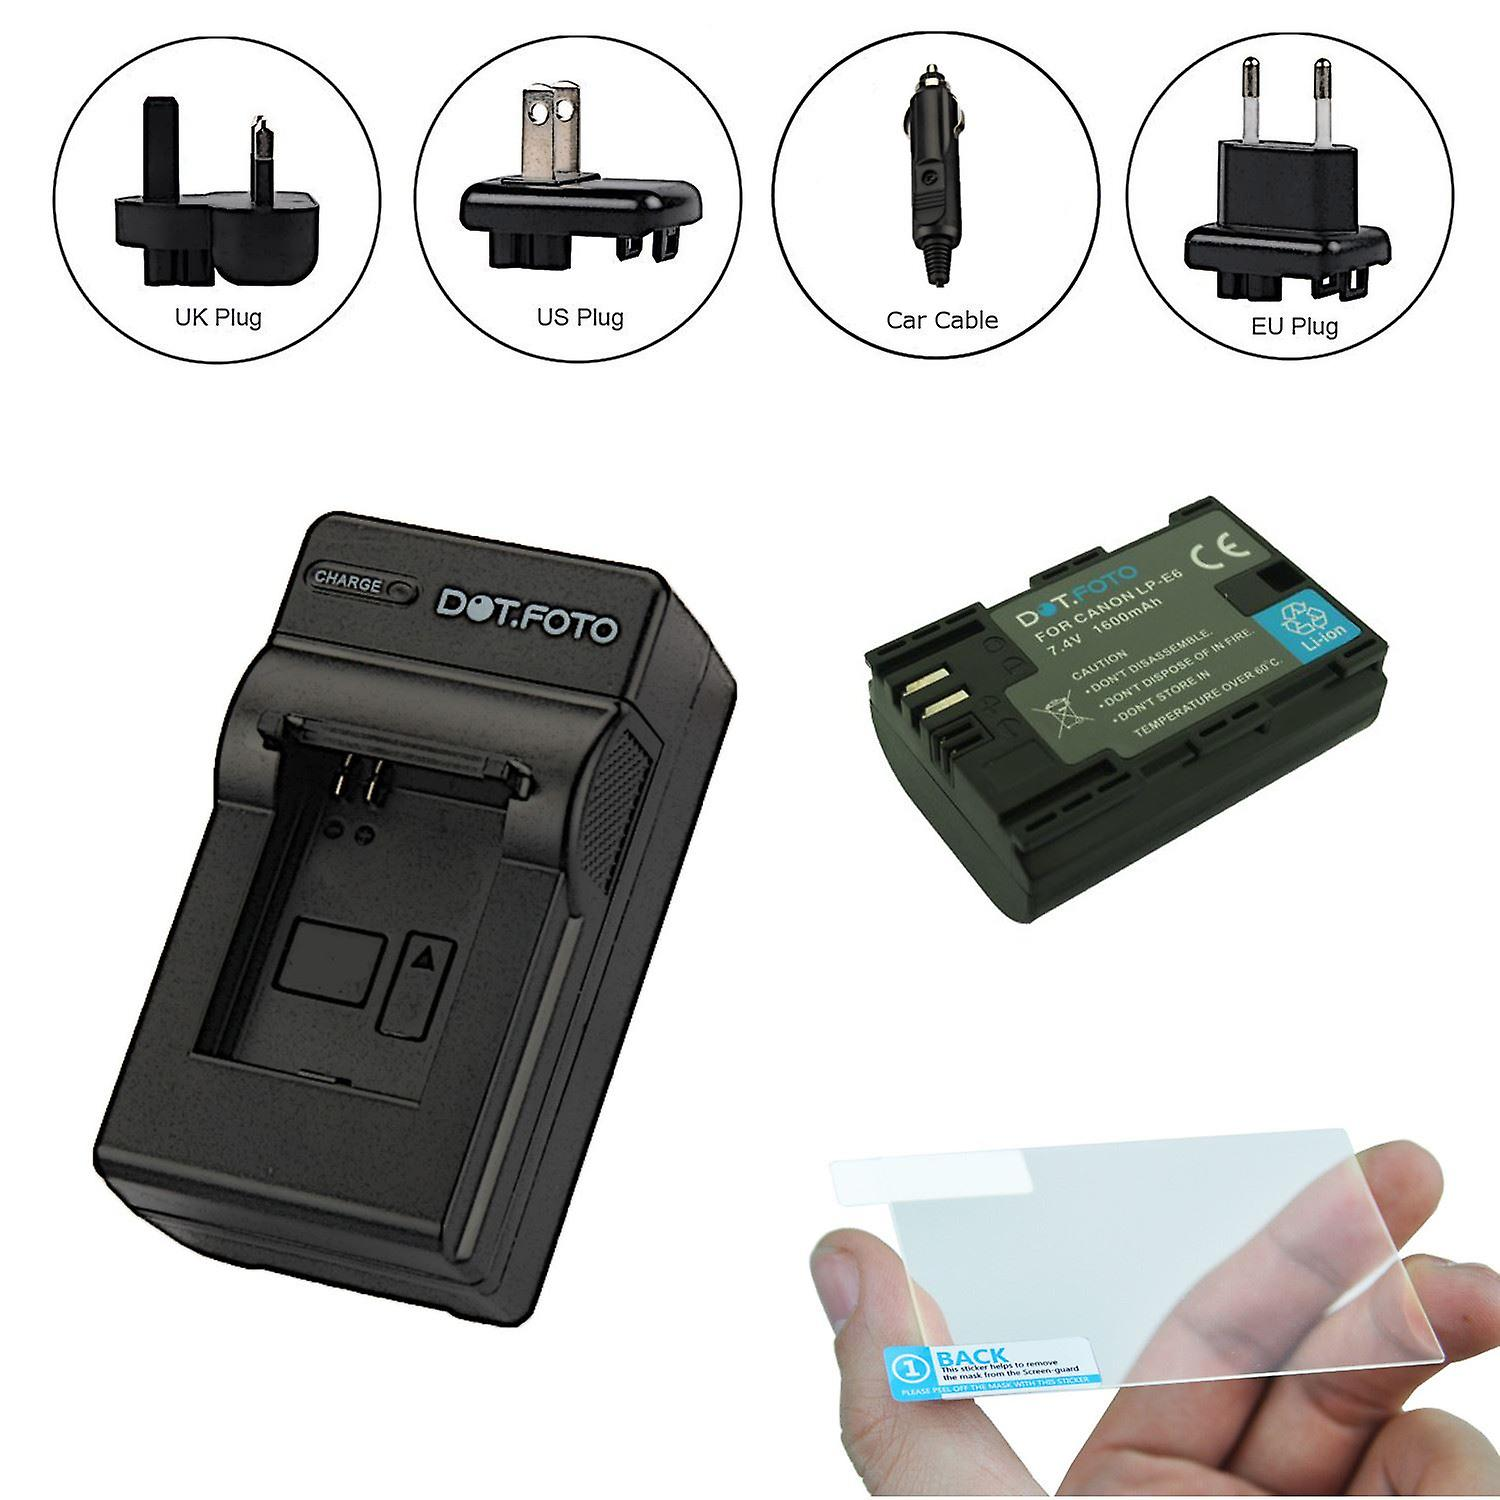 Dotfoto Lp E6 Battery 1600mah Travel Charger Optical Glass Lcd Screen Protector 3 In 1 Kit For Canon Eos 5d Mark Iii E6n Original Foto